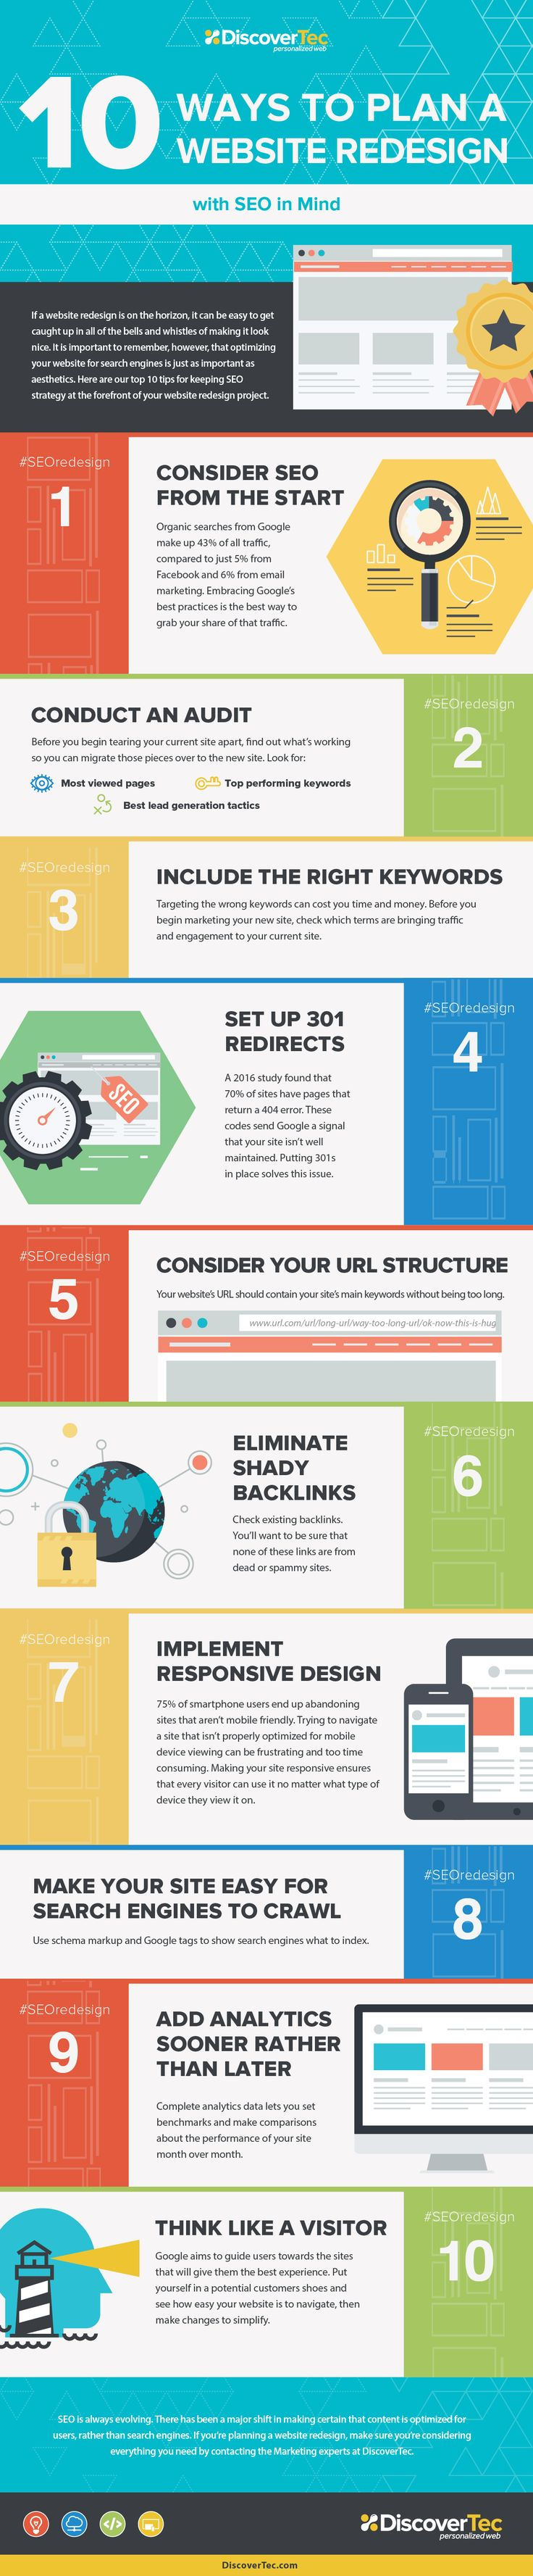 10 Ways to Plan a Website Redesign